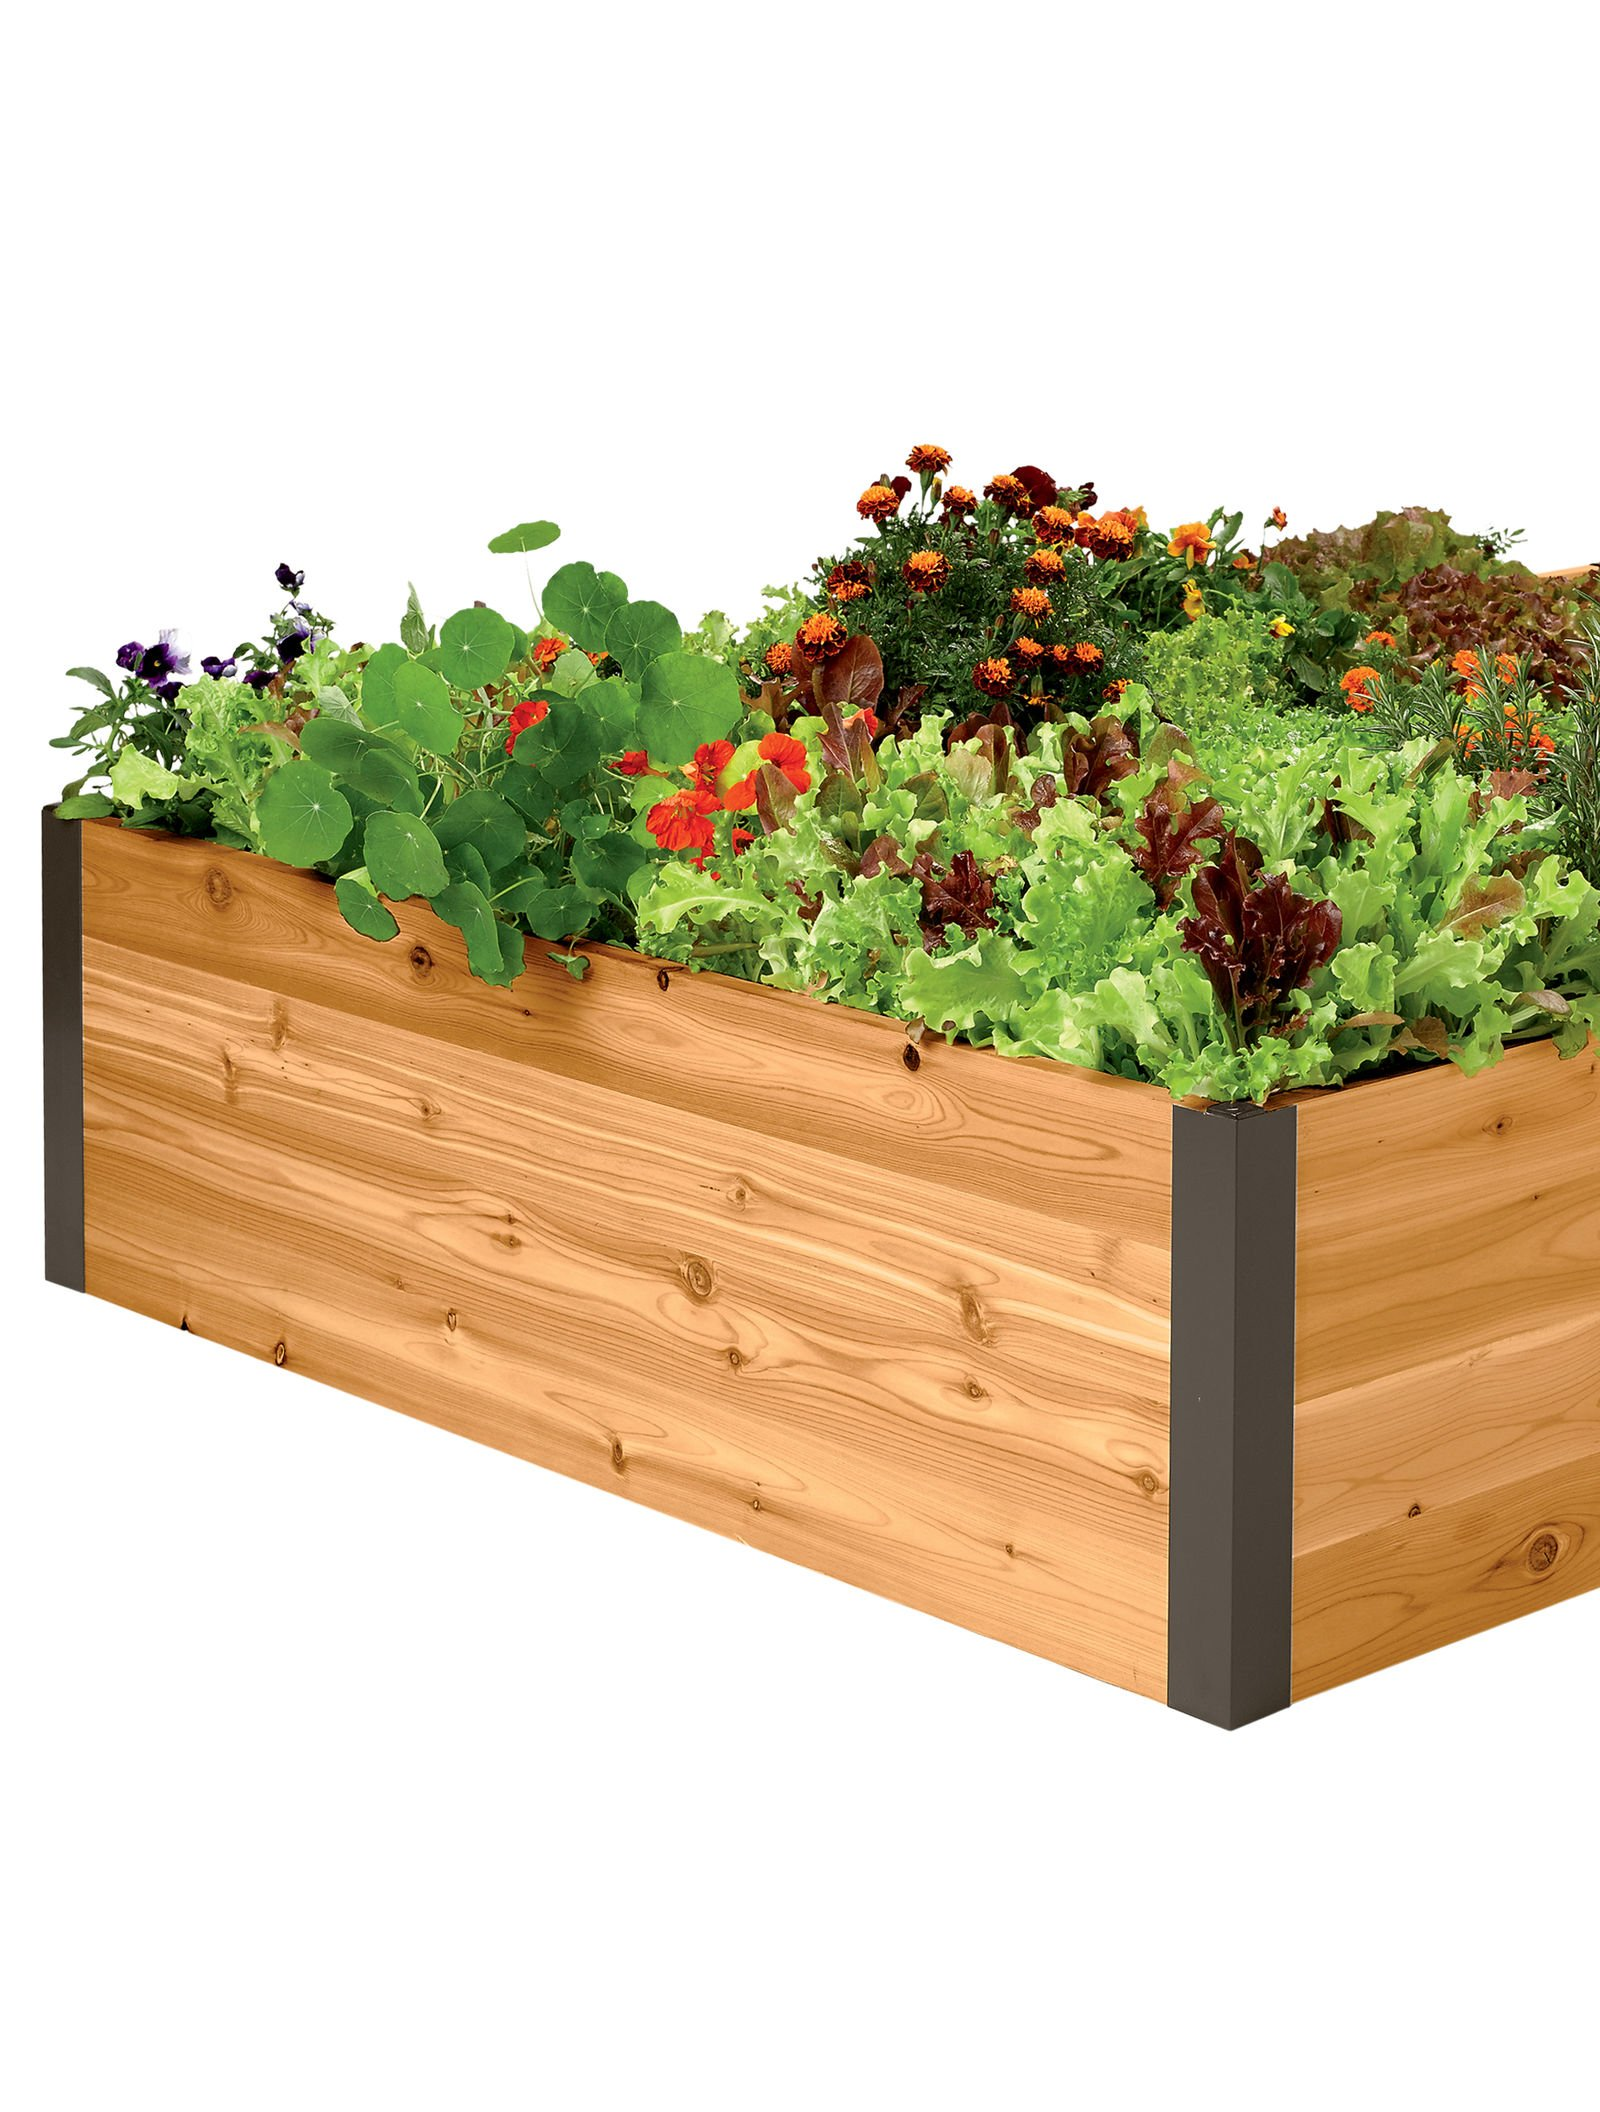 Cedar Raised Garden Bed 4' x 8' x 15'' by Gardener's Supply Company